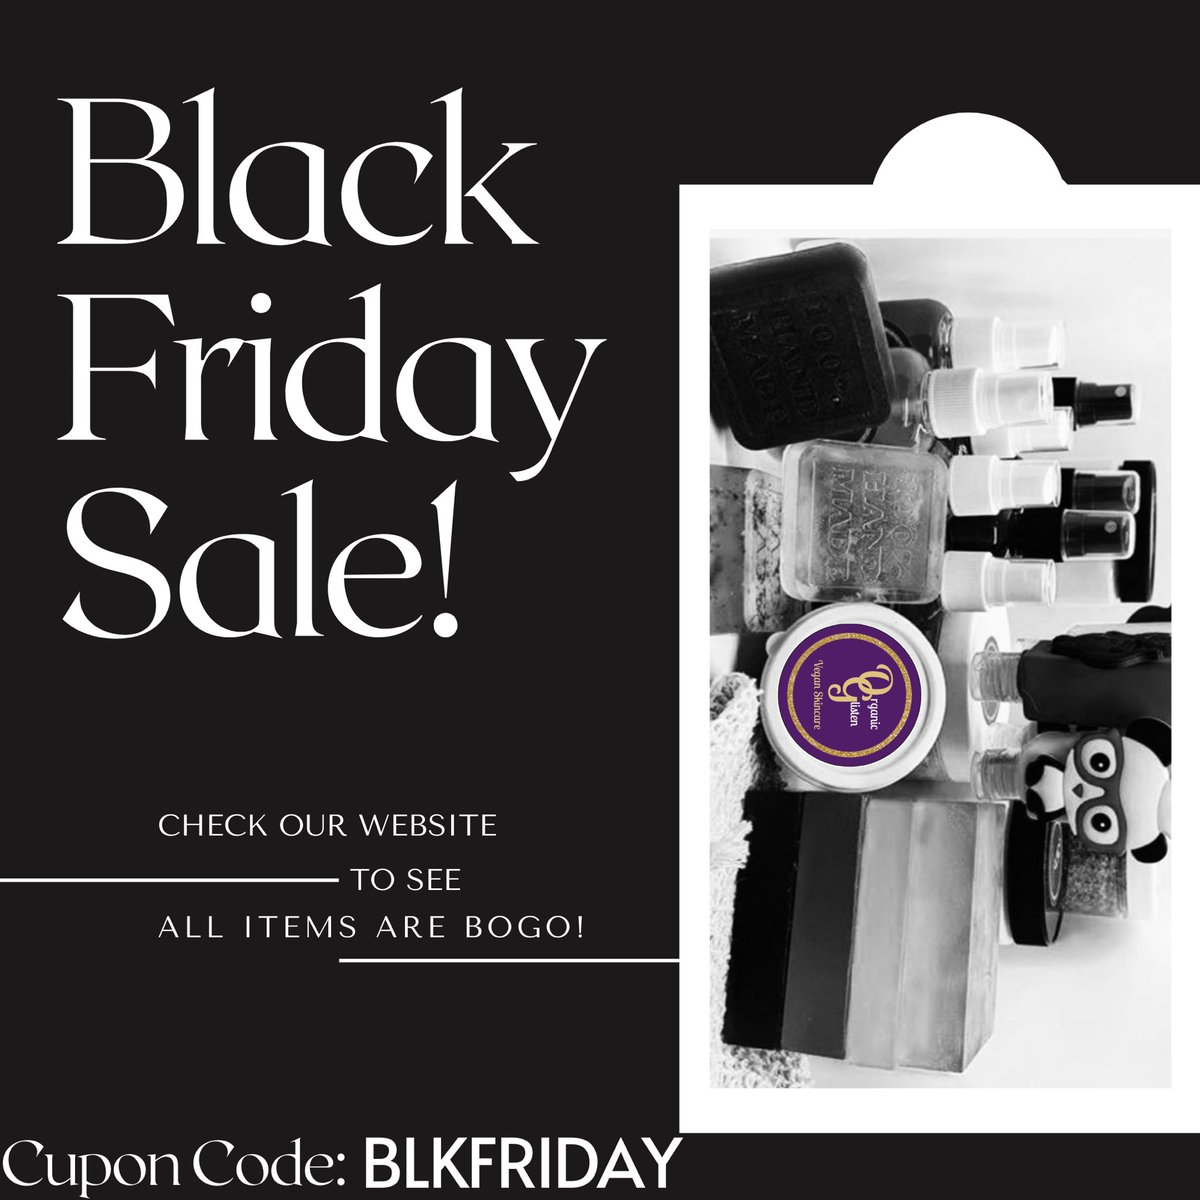 @KarlousM Make sure you all head to the website today! Coupon code: BLKFRIDAY Who doesn't like free?! Stock UP for the lockDOWN! 🧼  🌱  #vegan #soap #Blackfridaydeals #Blackfriday #Blackfridaysale2020  https://t.co/R4Zxe3ygSk https://t.co/4Dxcs14FfG